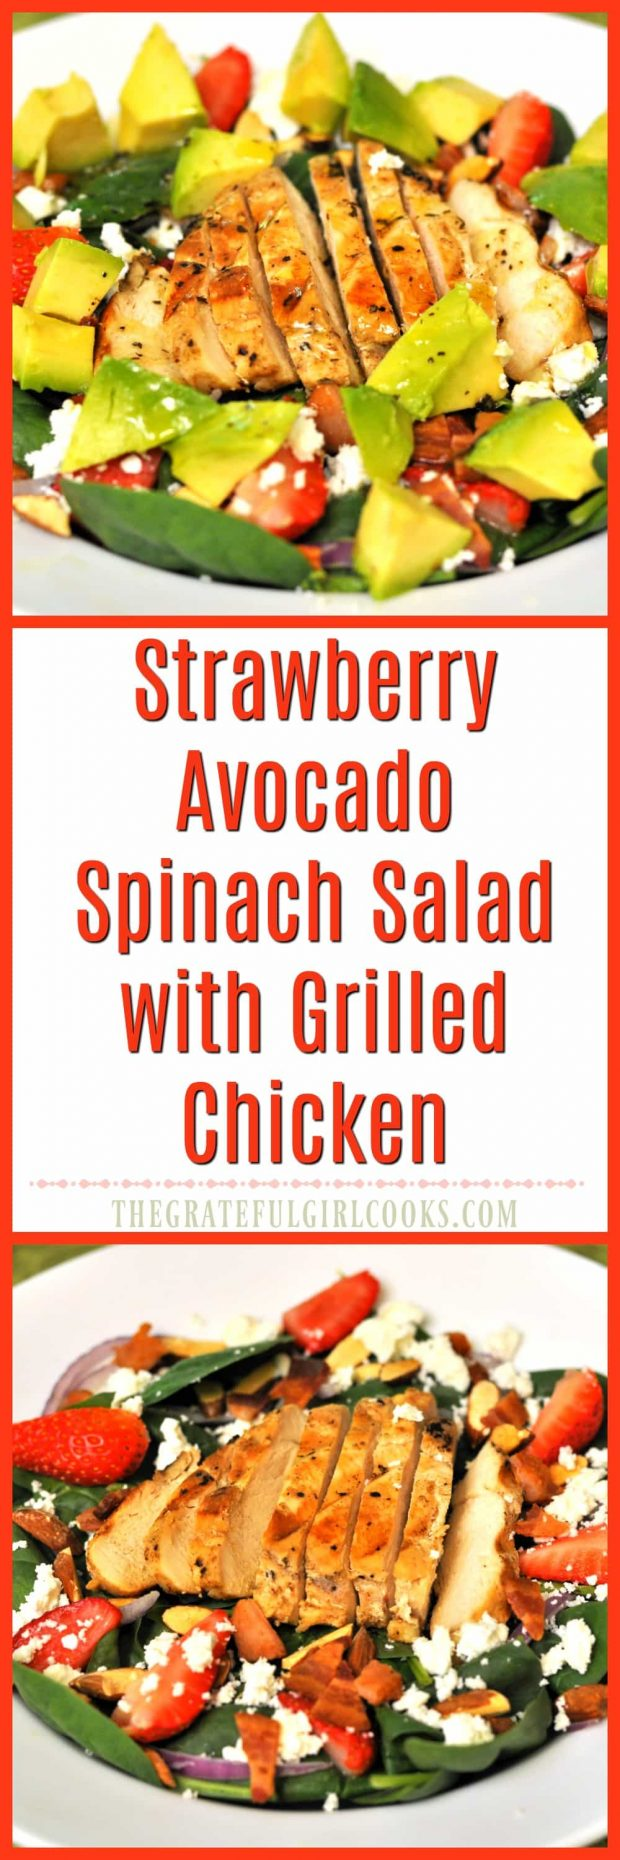 Strawberry Avocado Spinach Salad With Grilled Chicken / The Grateful Girl Cooks!